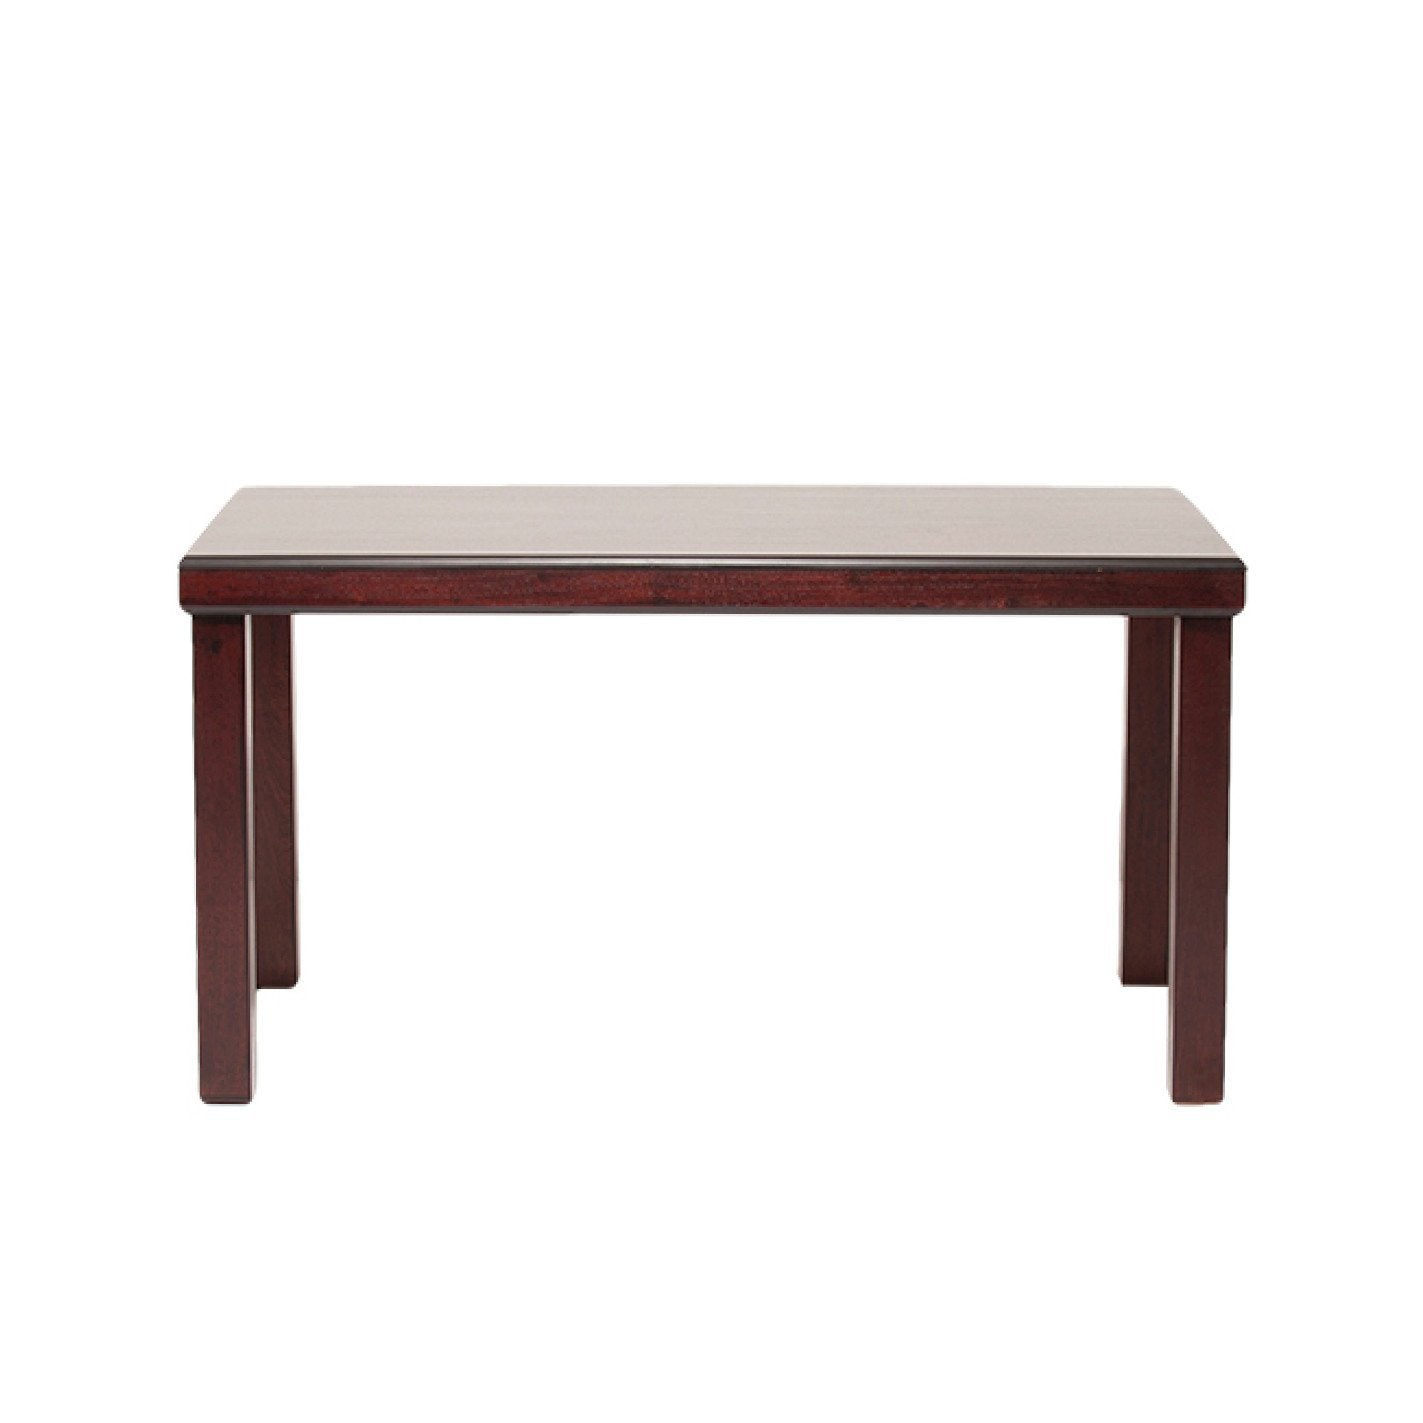 URBAN-DINING TABLE-2000/900-DM